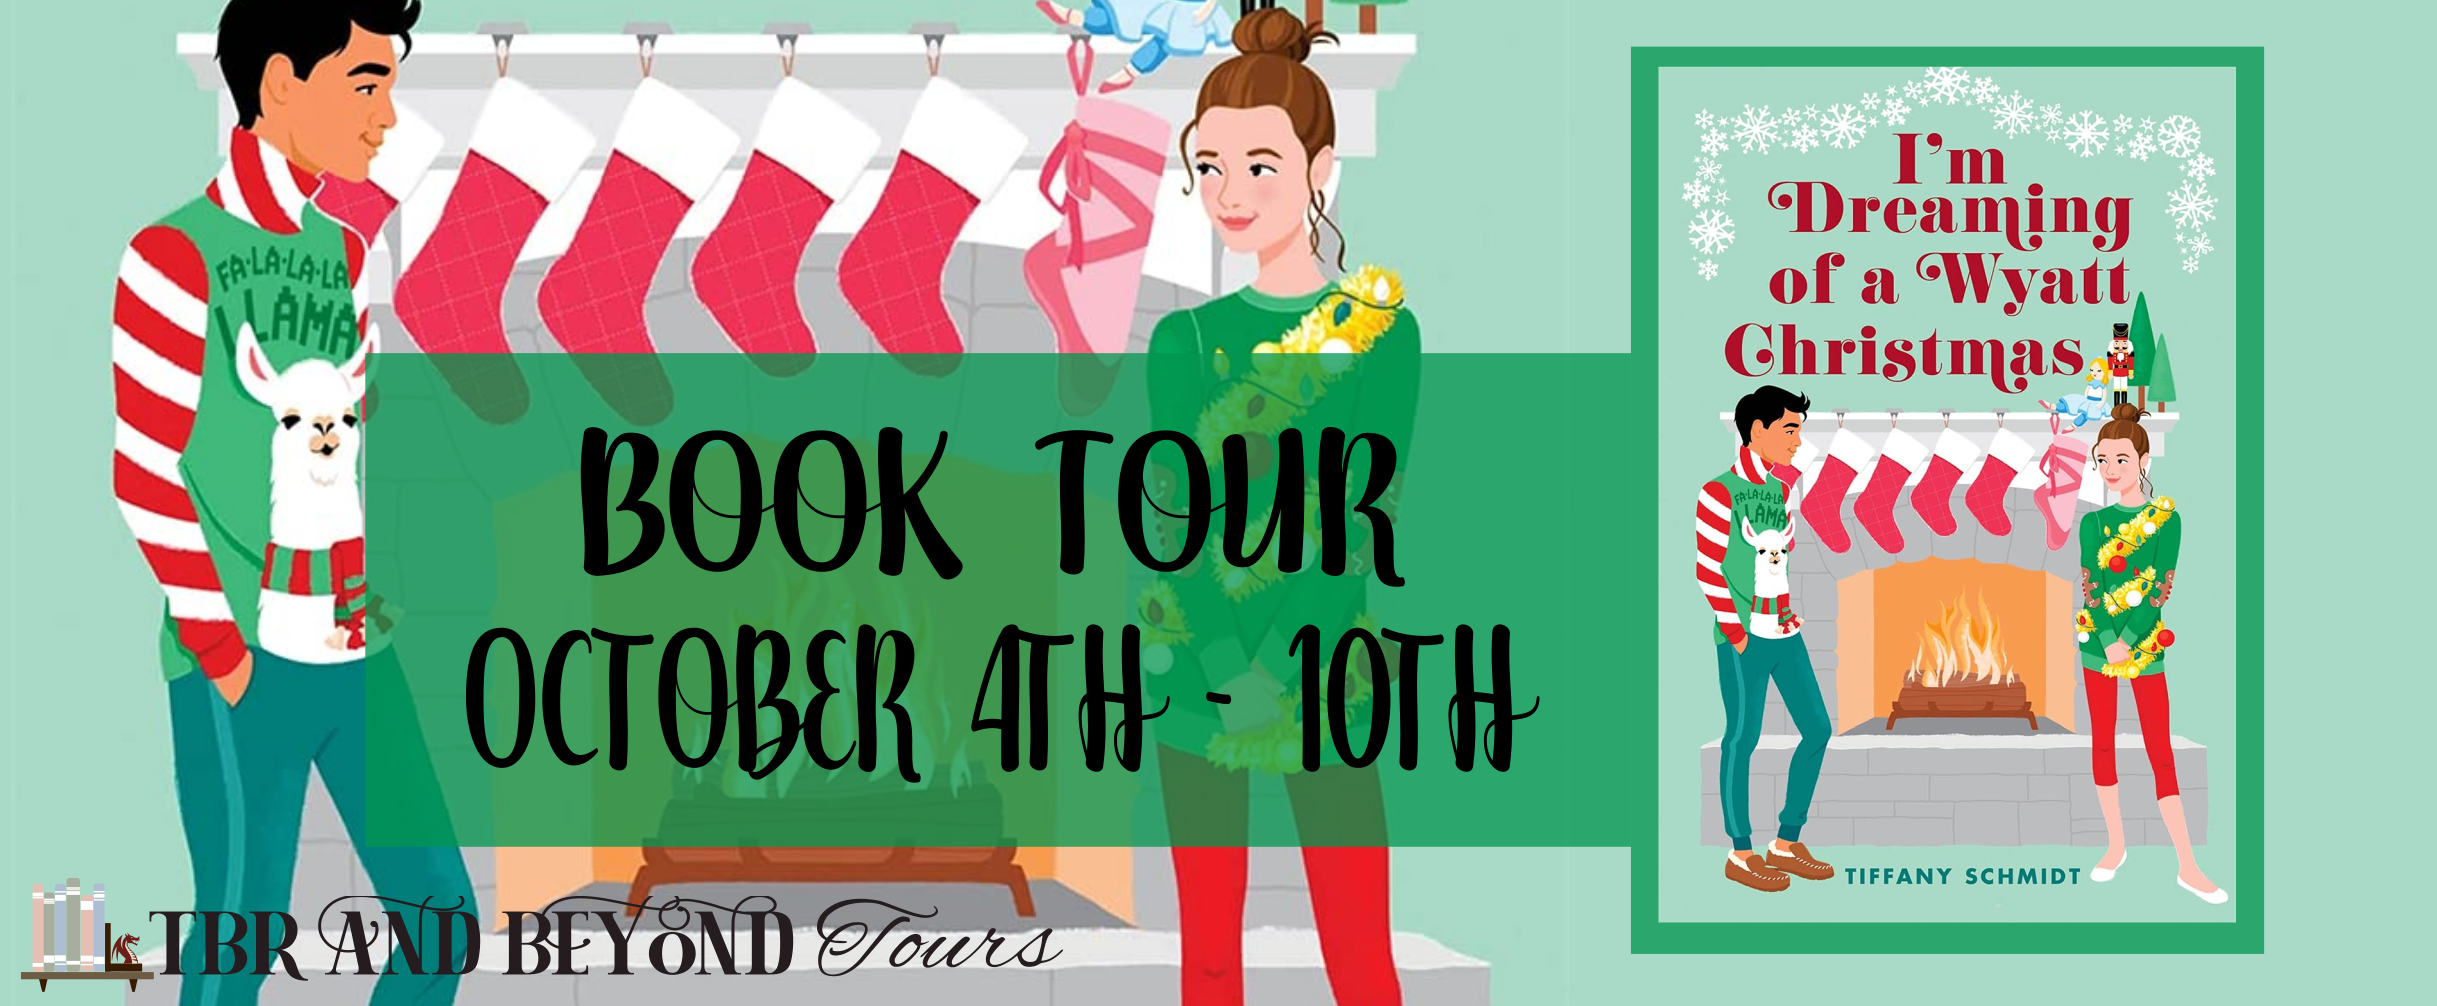 Blog Tour: I'm Dreaming of a Wyatt Christmas by Tiffany Schmidt (Interview!)